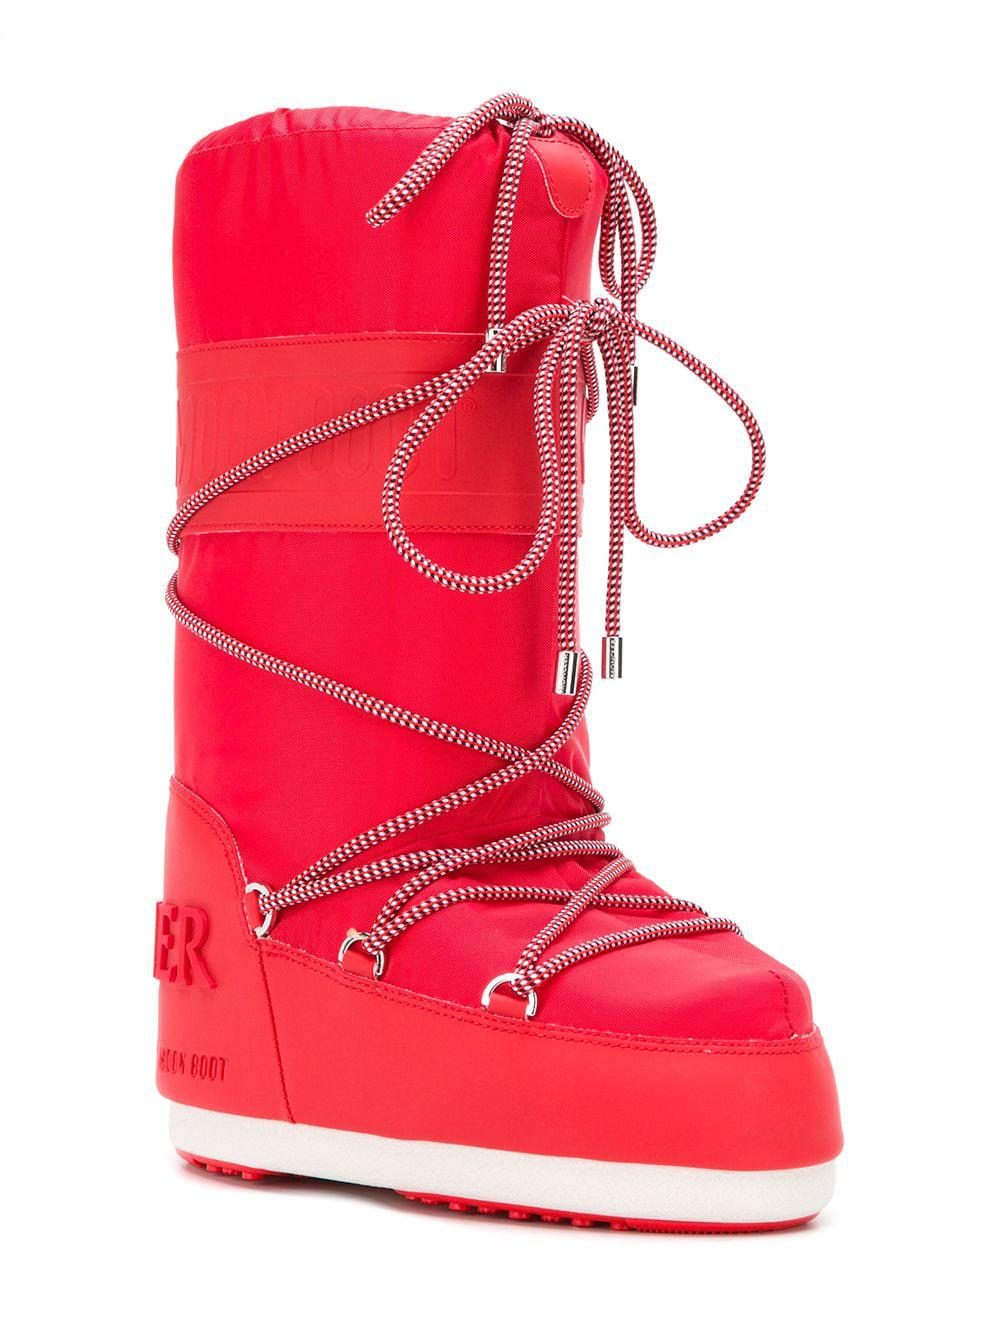 2800e4406 Moncler X Moonboot Lace Boots in Red - Lyst